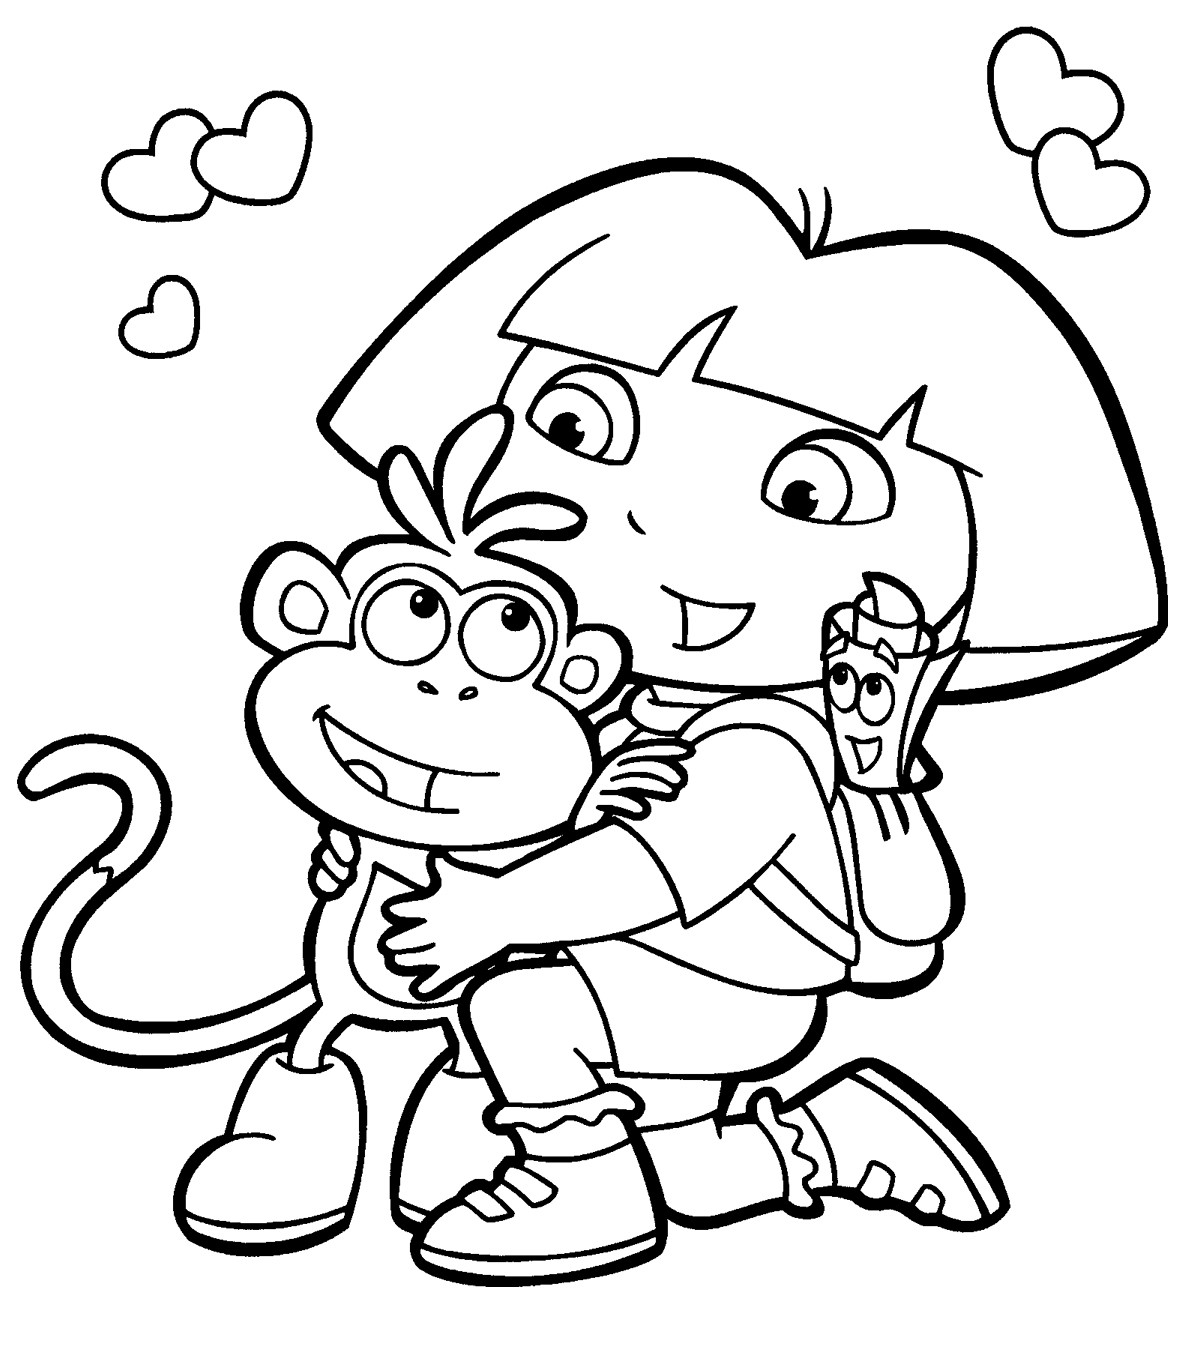 Girl Coloring Pages Printable Coloring Pages For Girls Coloring